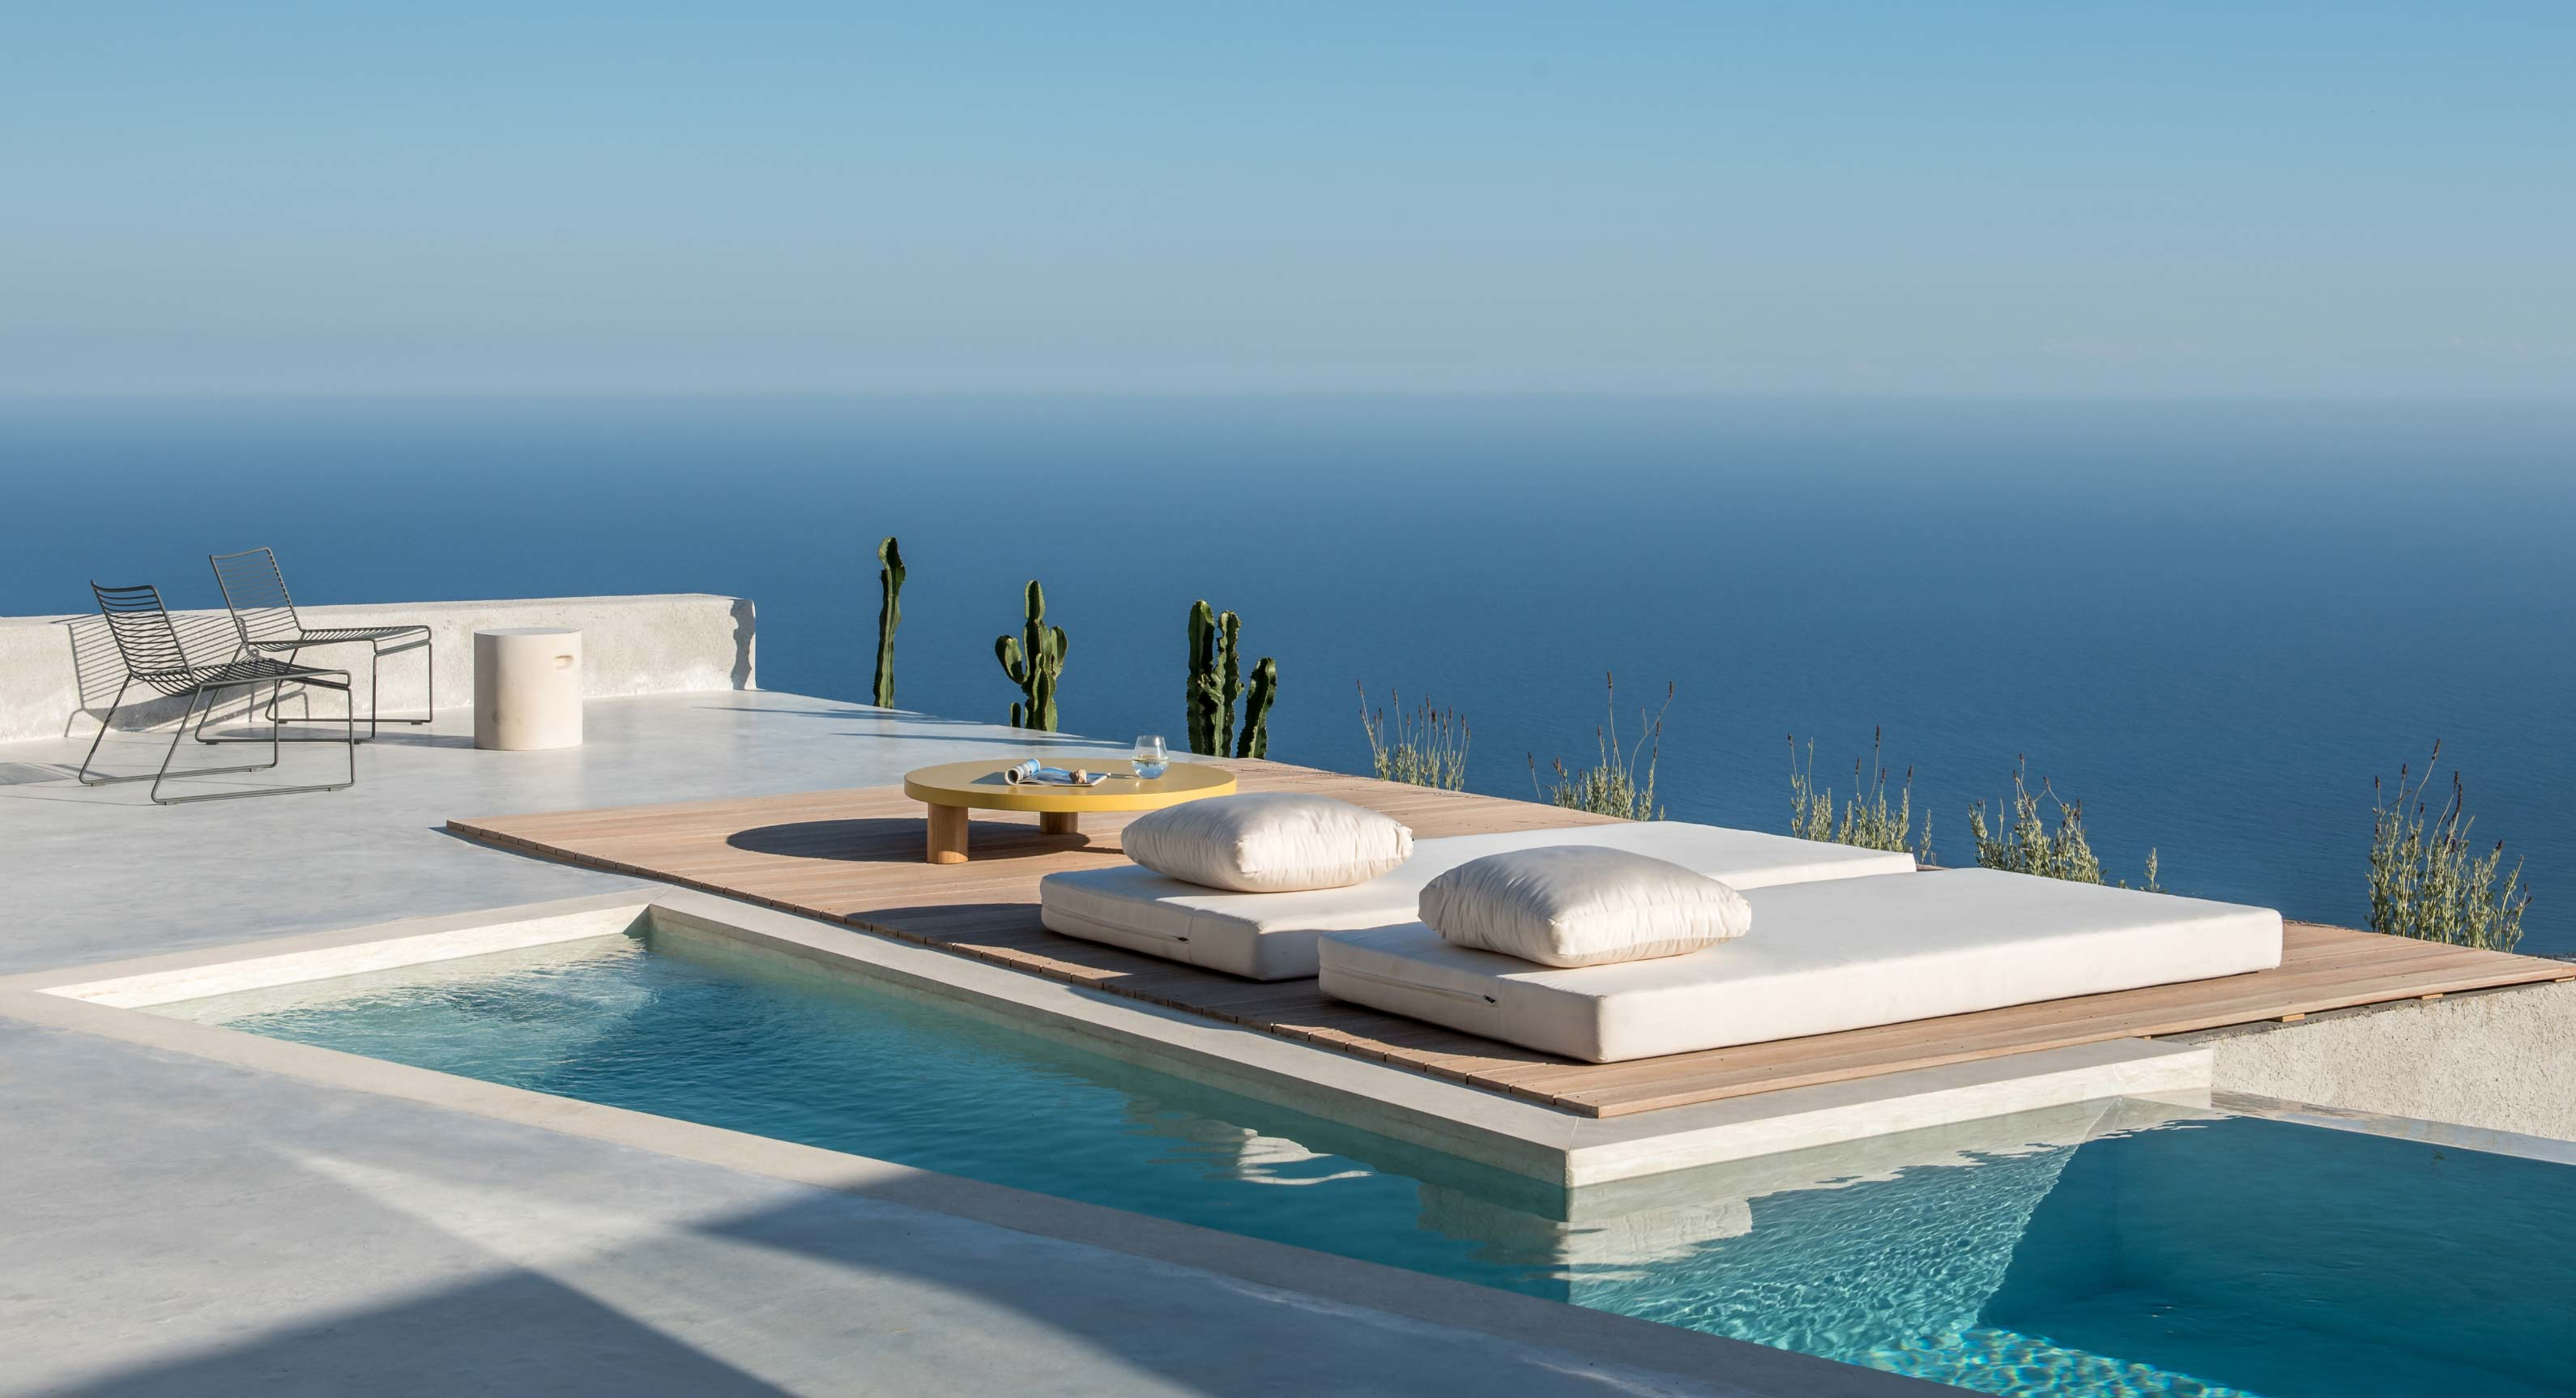 Nestled in Santorini's Mountainside: The Holiday Home of Dreams